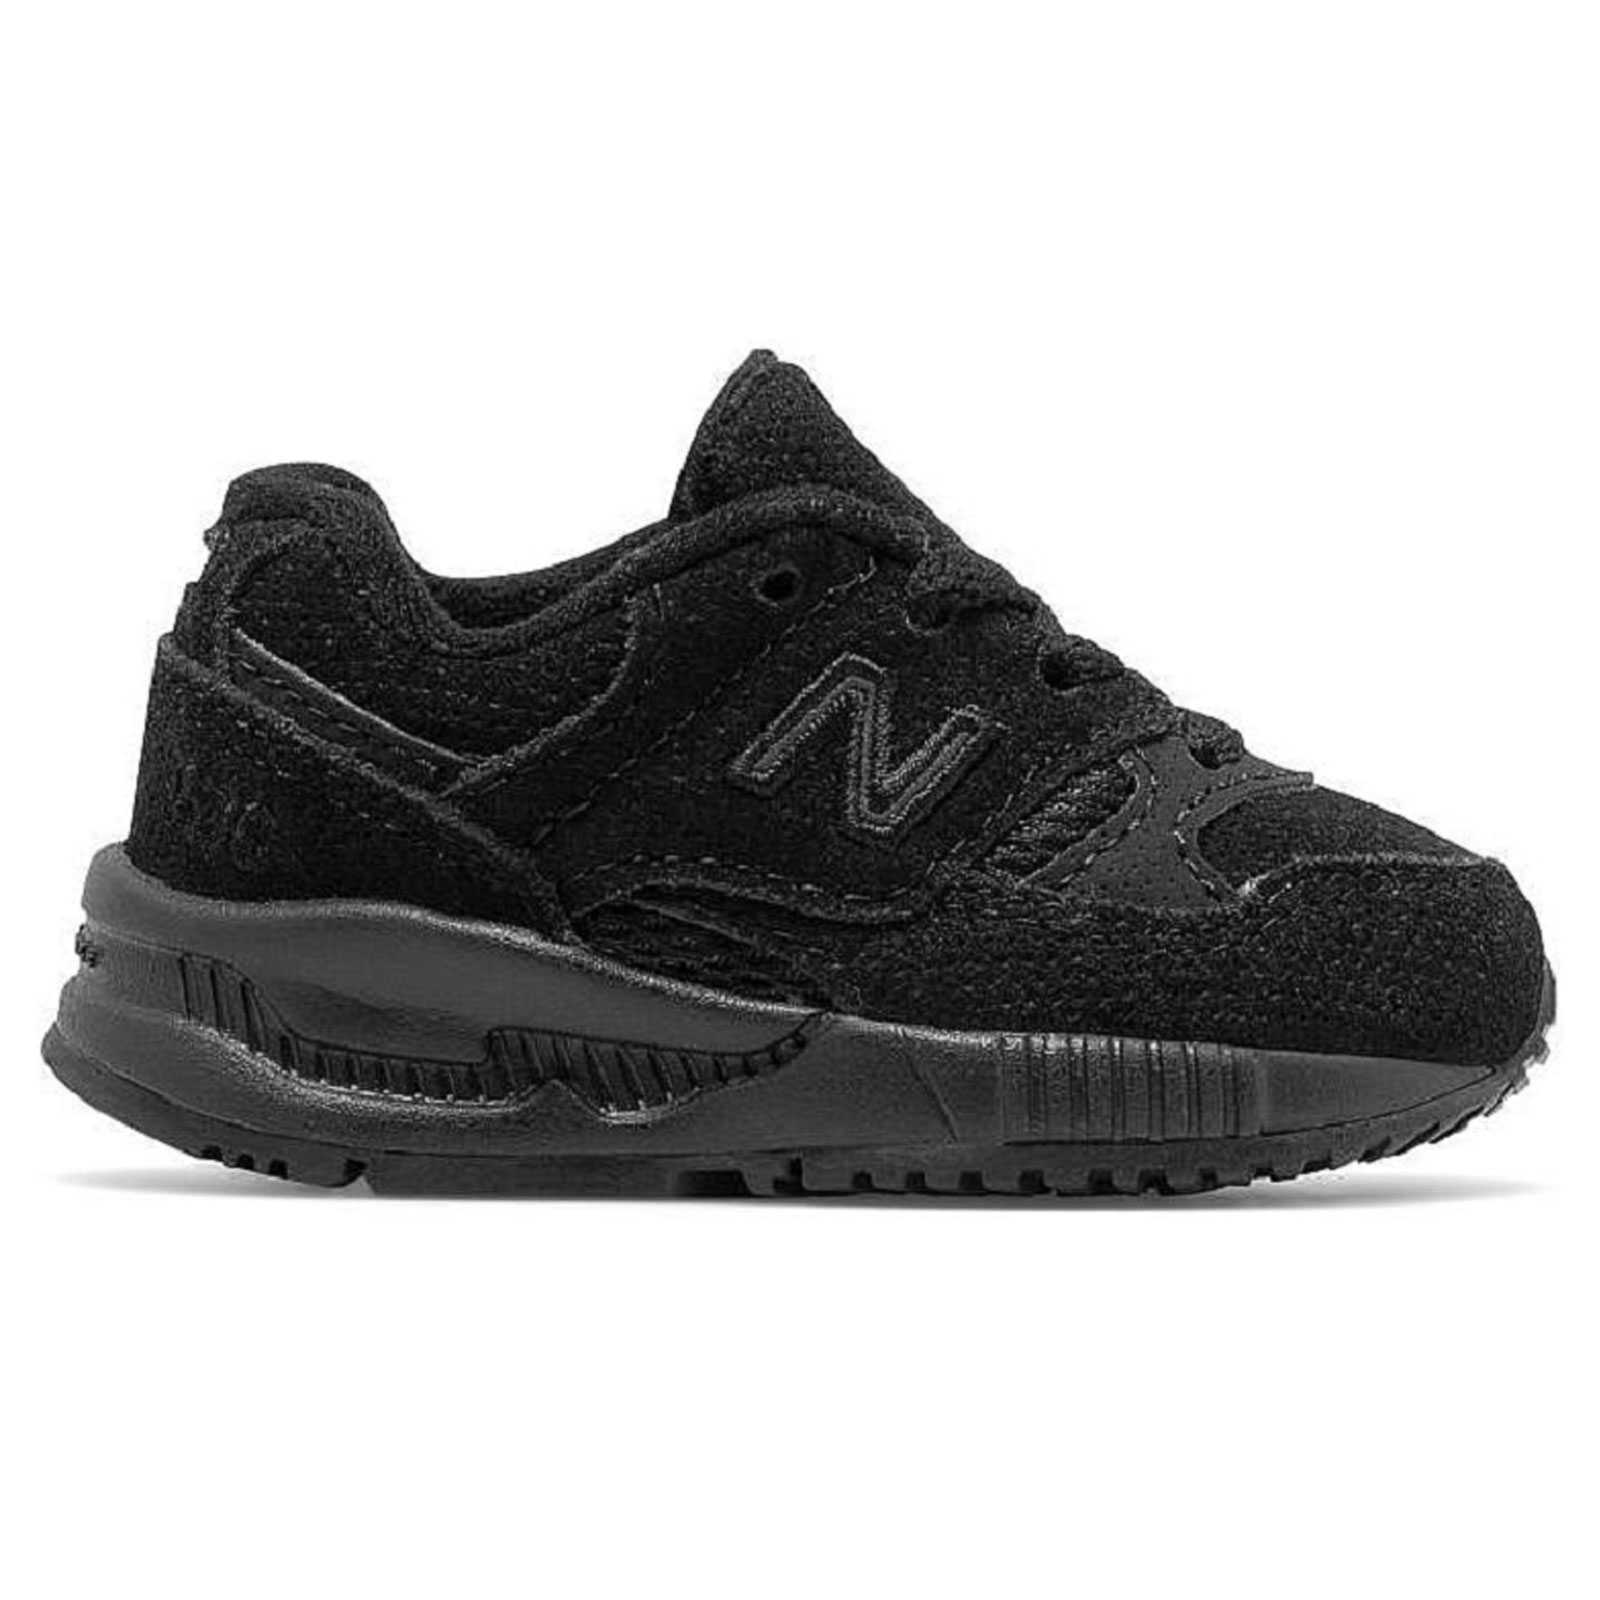 new balance 530 kl530tbi sneaker babyschuhe kinderschuhe. Black Bedroom Furniture Sets. Home Design Ideas